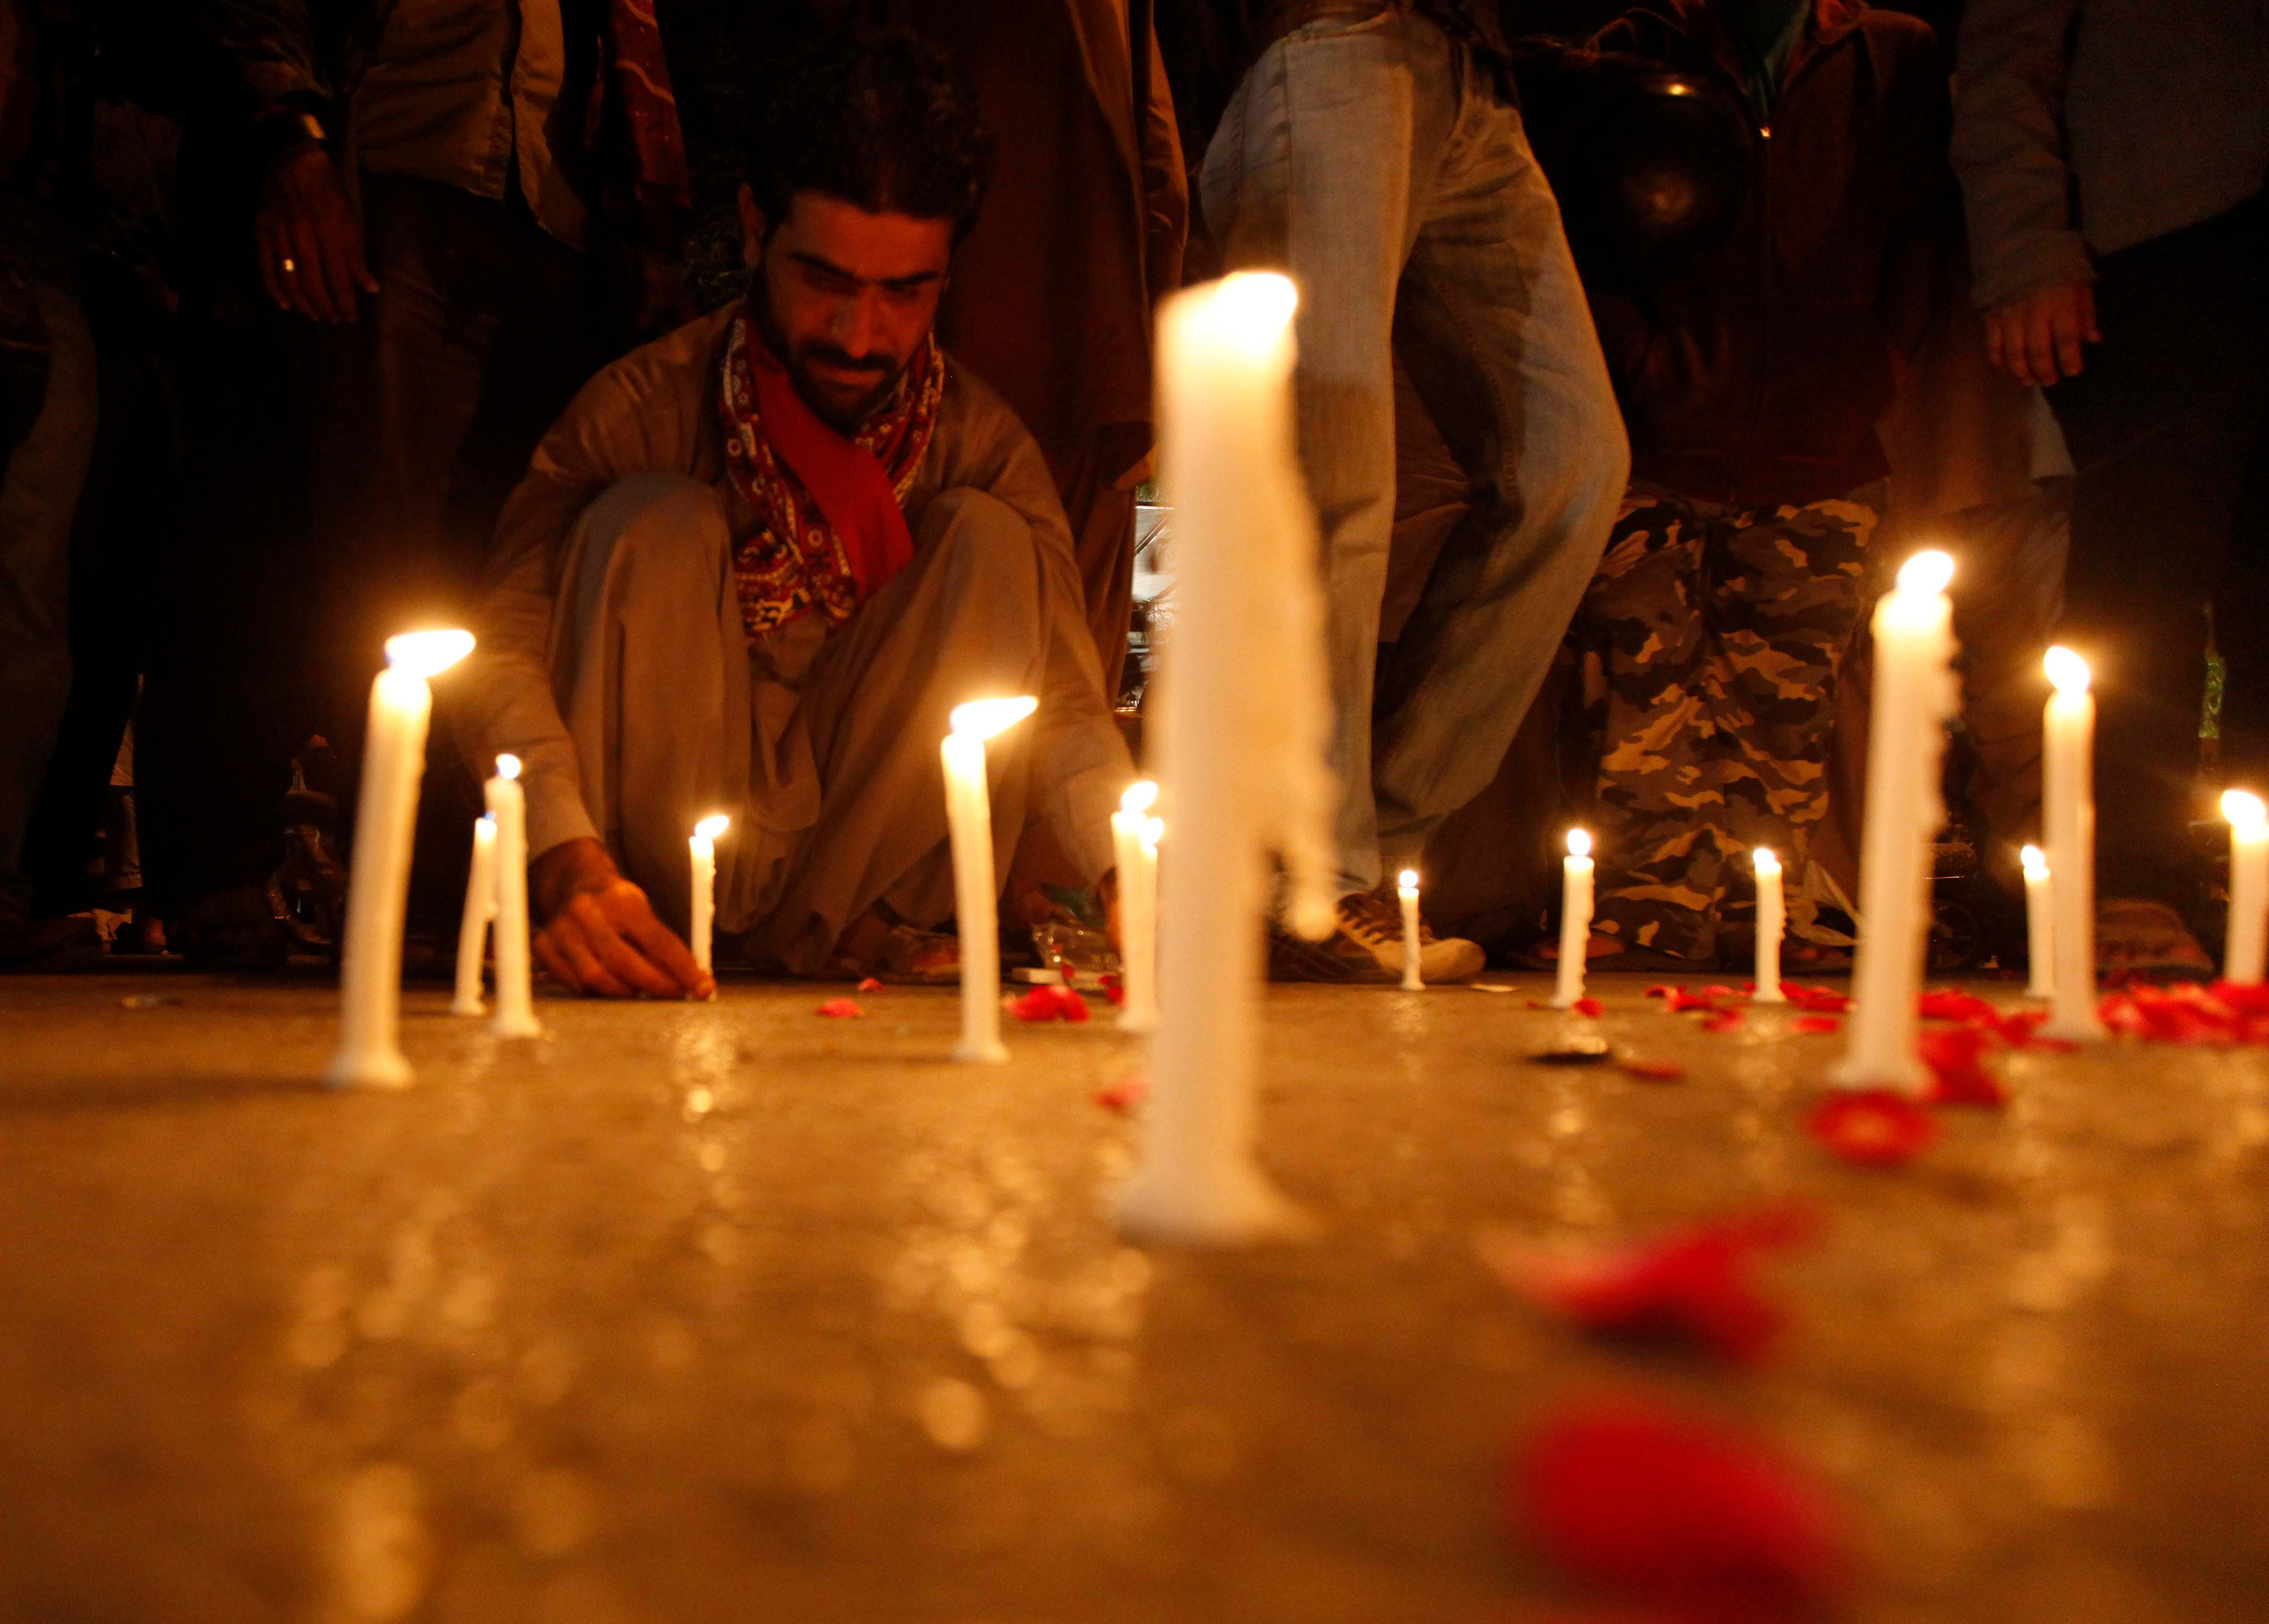 A man lights candles to mourn the victims from the Army Public School in Peshawar, which was attack by Taliban gunmen, in Karachi, December 16, 2014 reuters